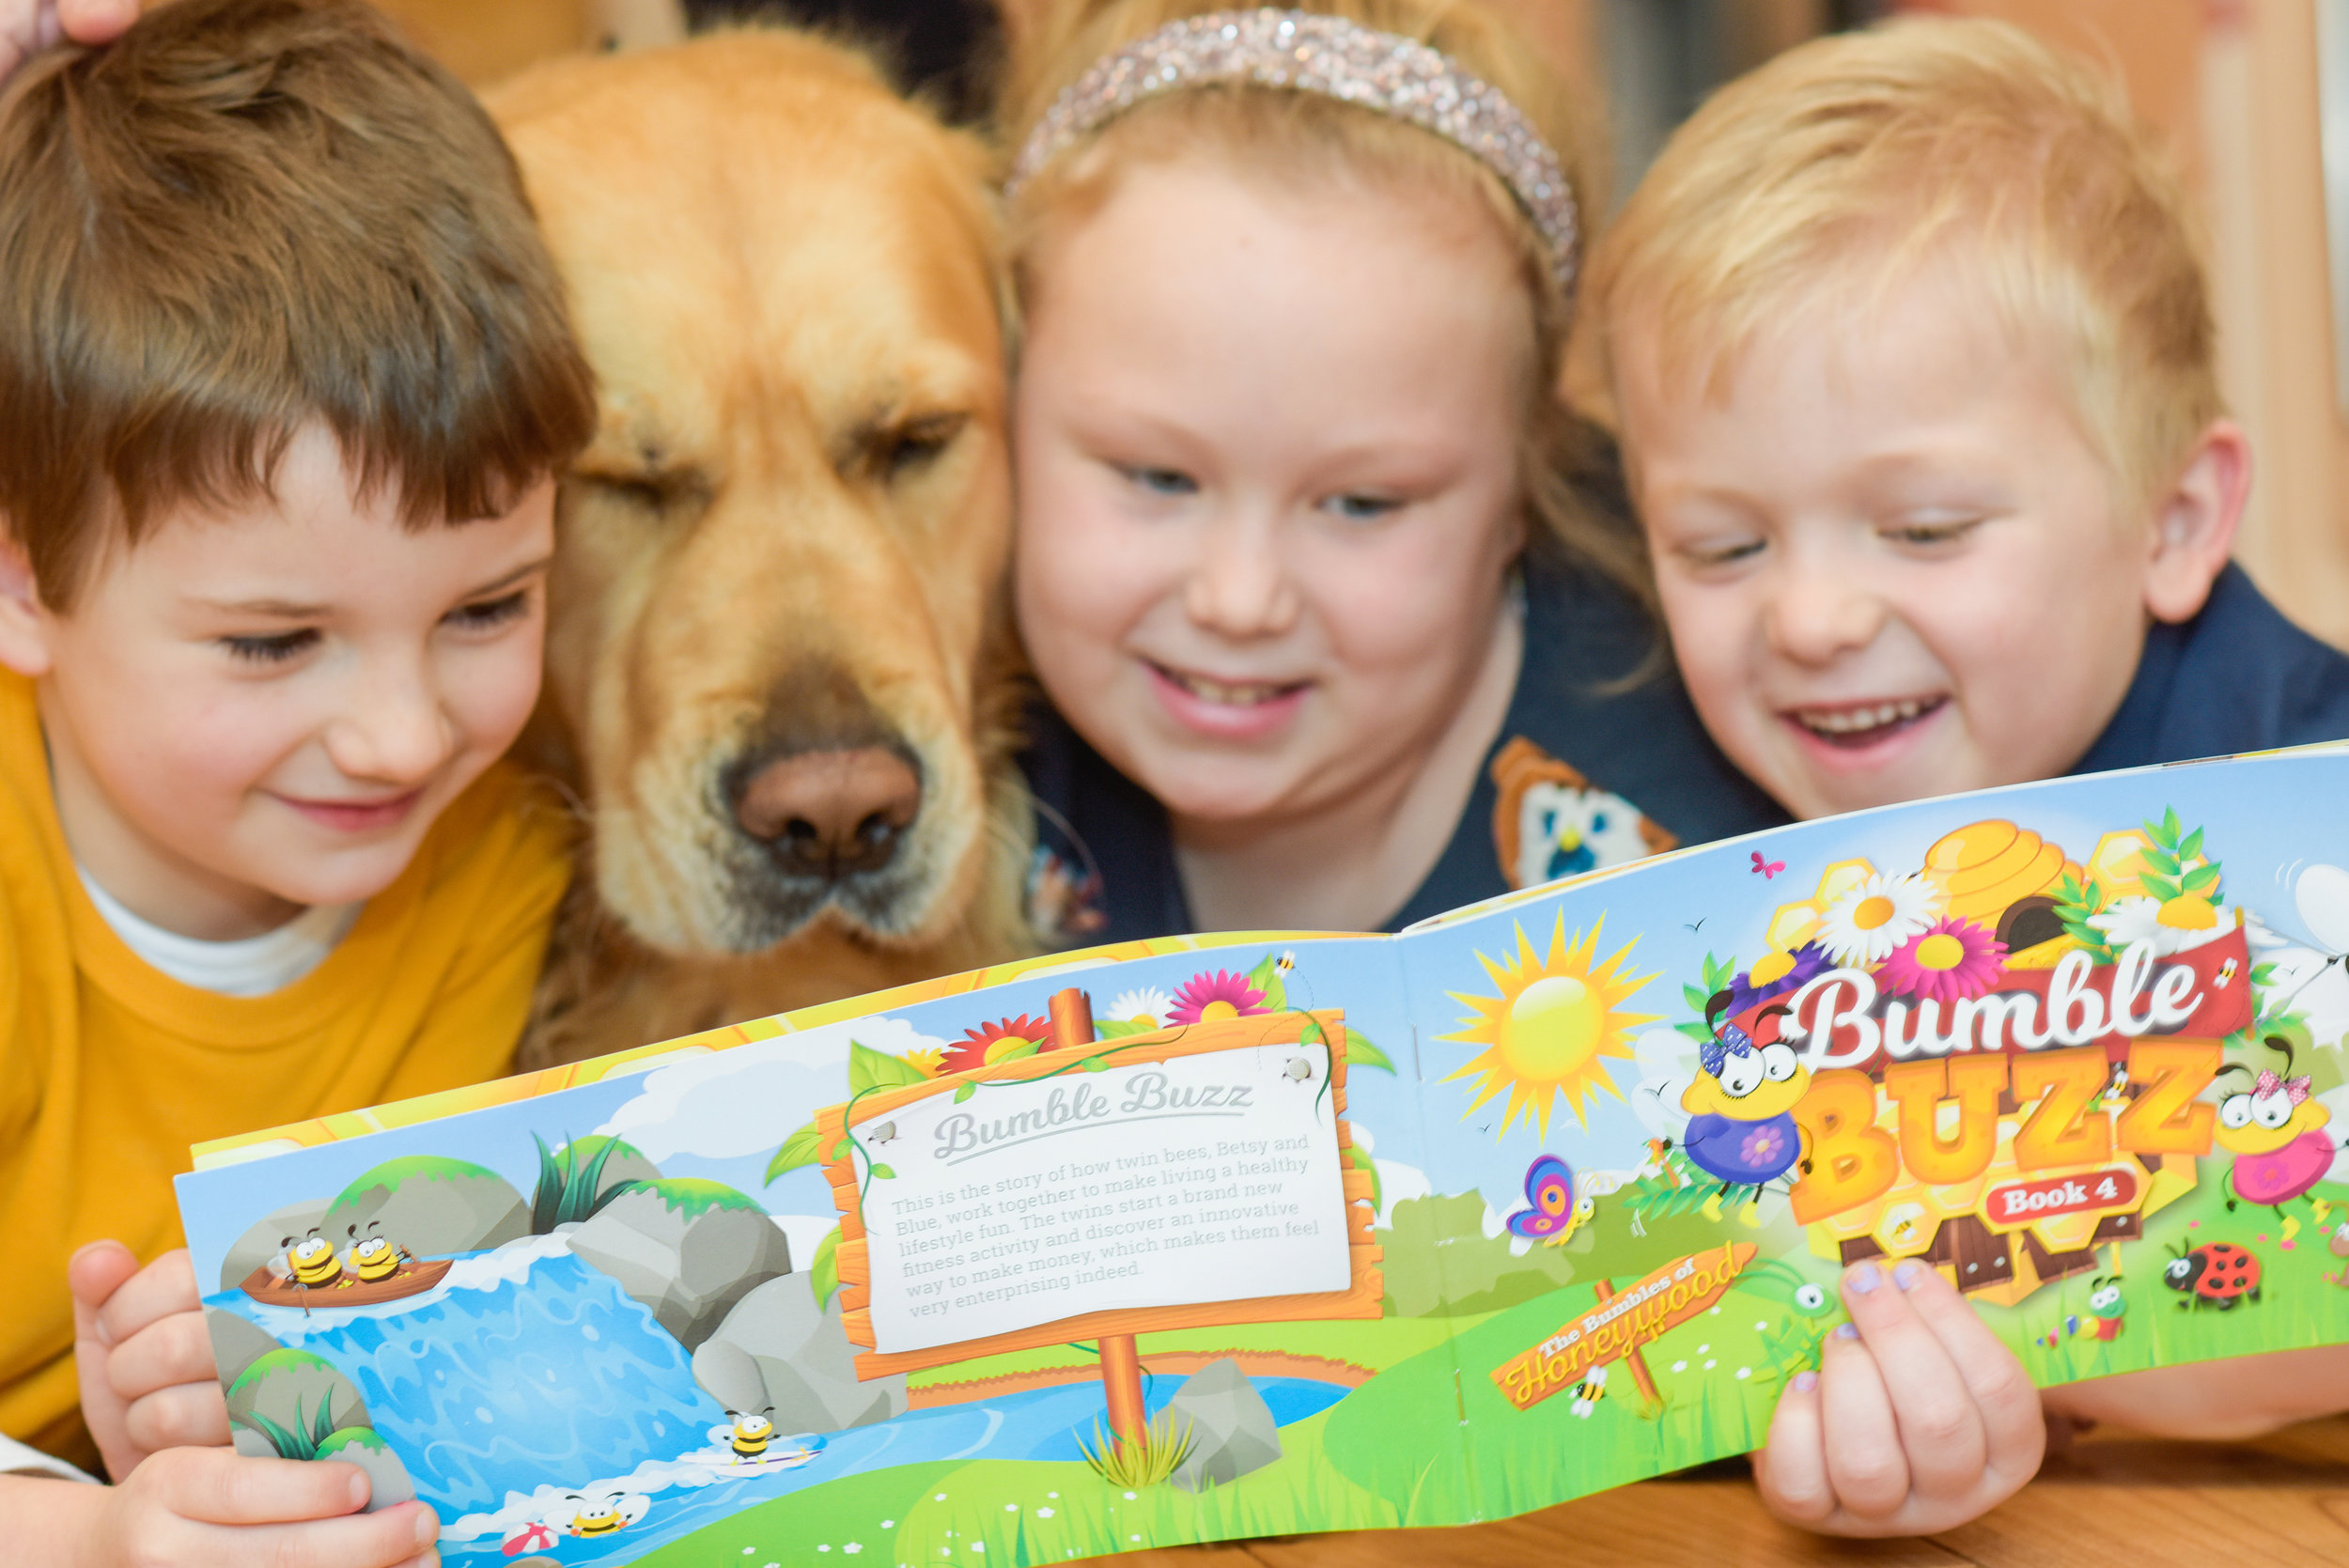 Sue's dog, Jack, can't resist getting in on the action while her grandchildren are reading the bumbles books